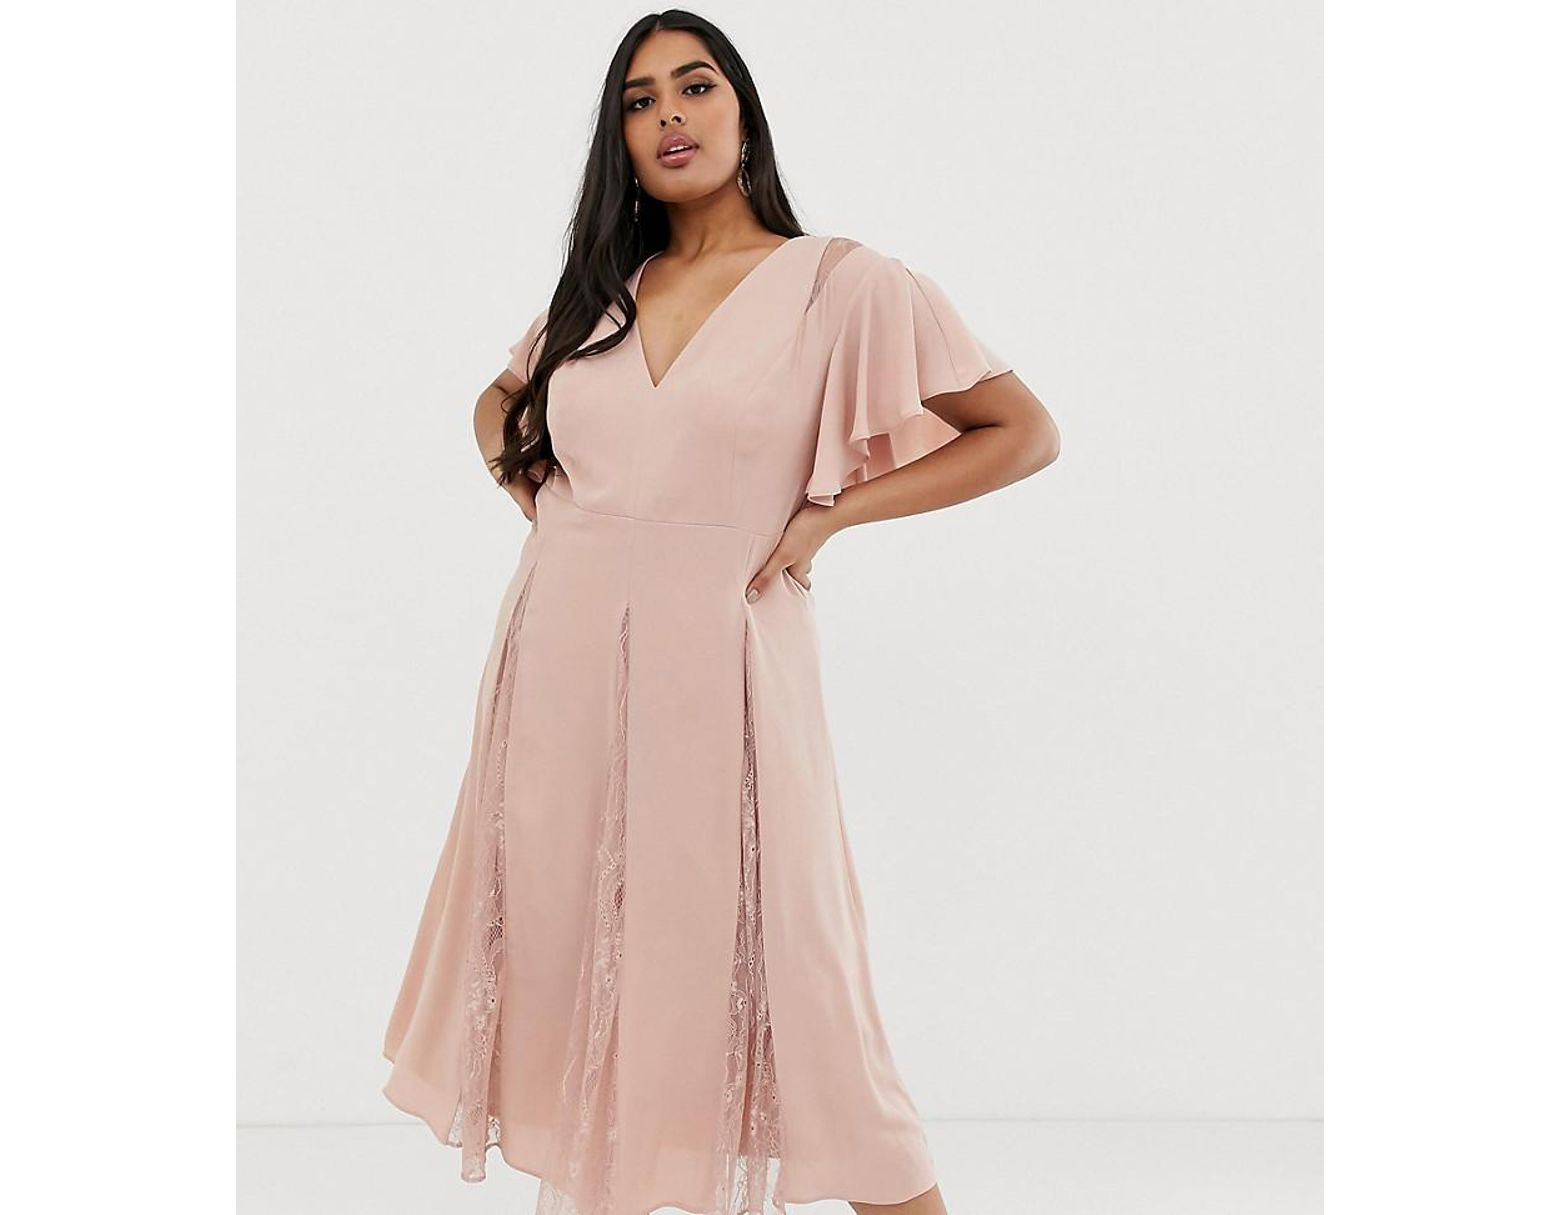 a238875b64910 ASOS Asos Design Curve Midi Dress With Godet Lace Inserts in Pink - Lyst